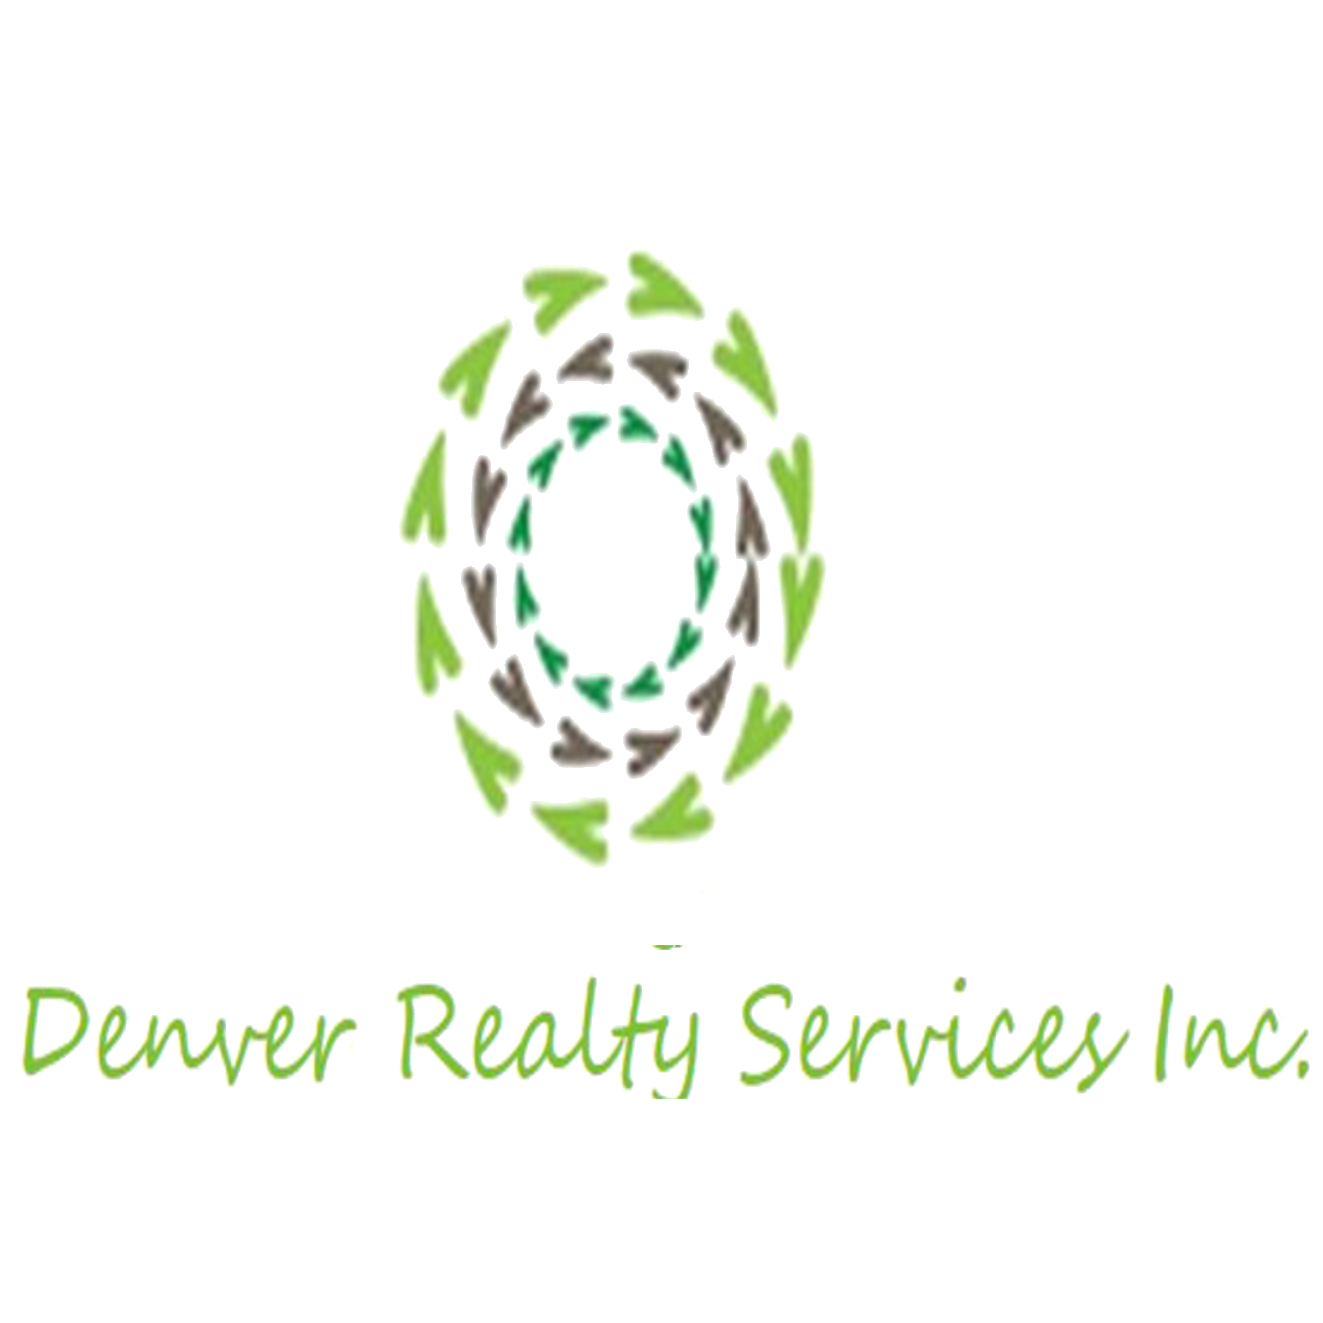 Denver Realty Services, Inc